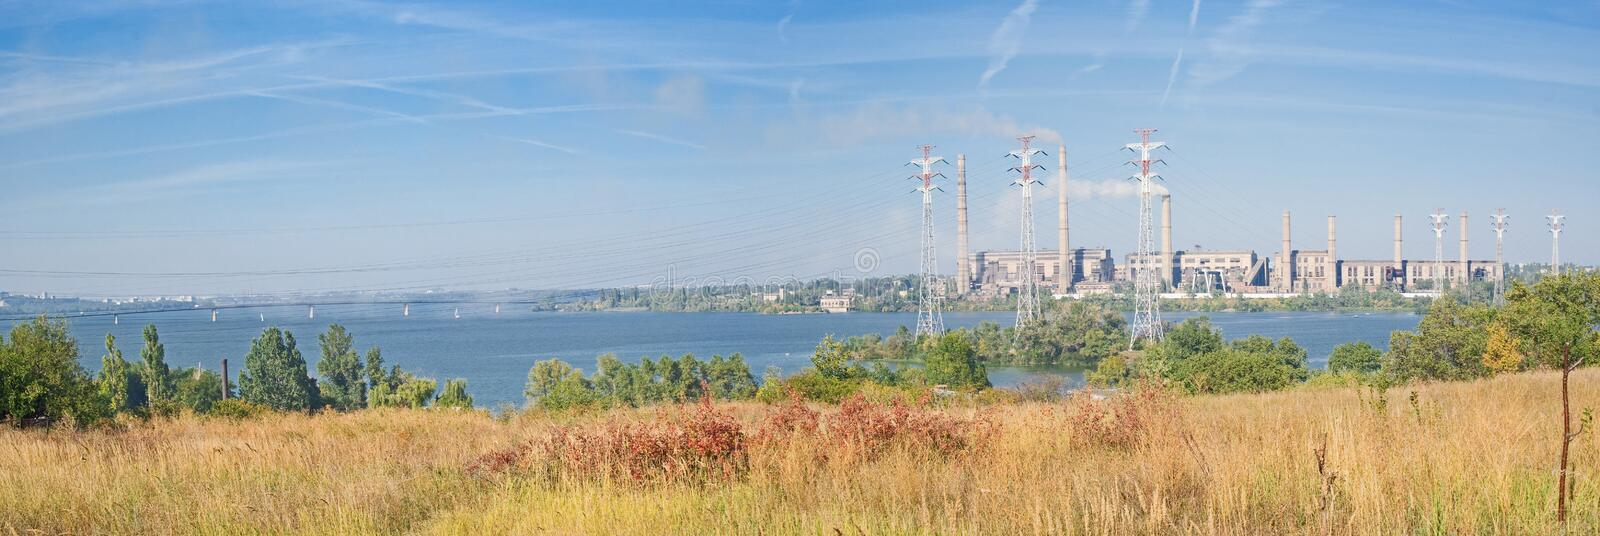 Download Electric Power Station Beside A River. Royalty Free Stock Images - Image: 16253599